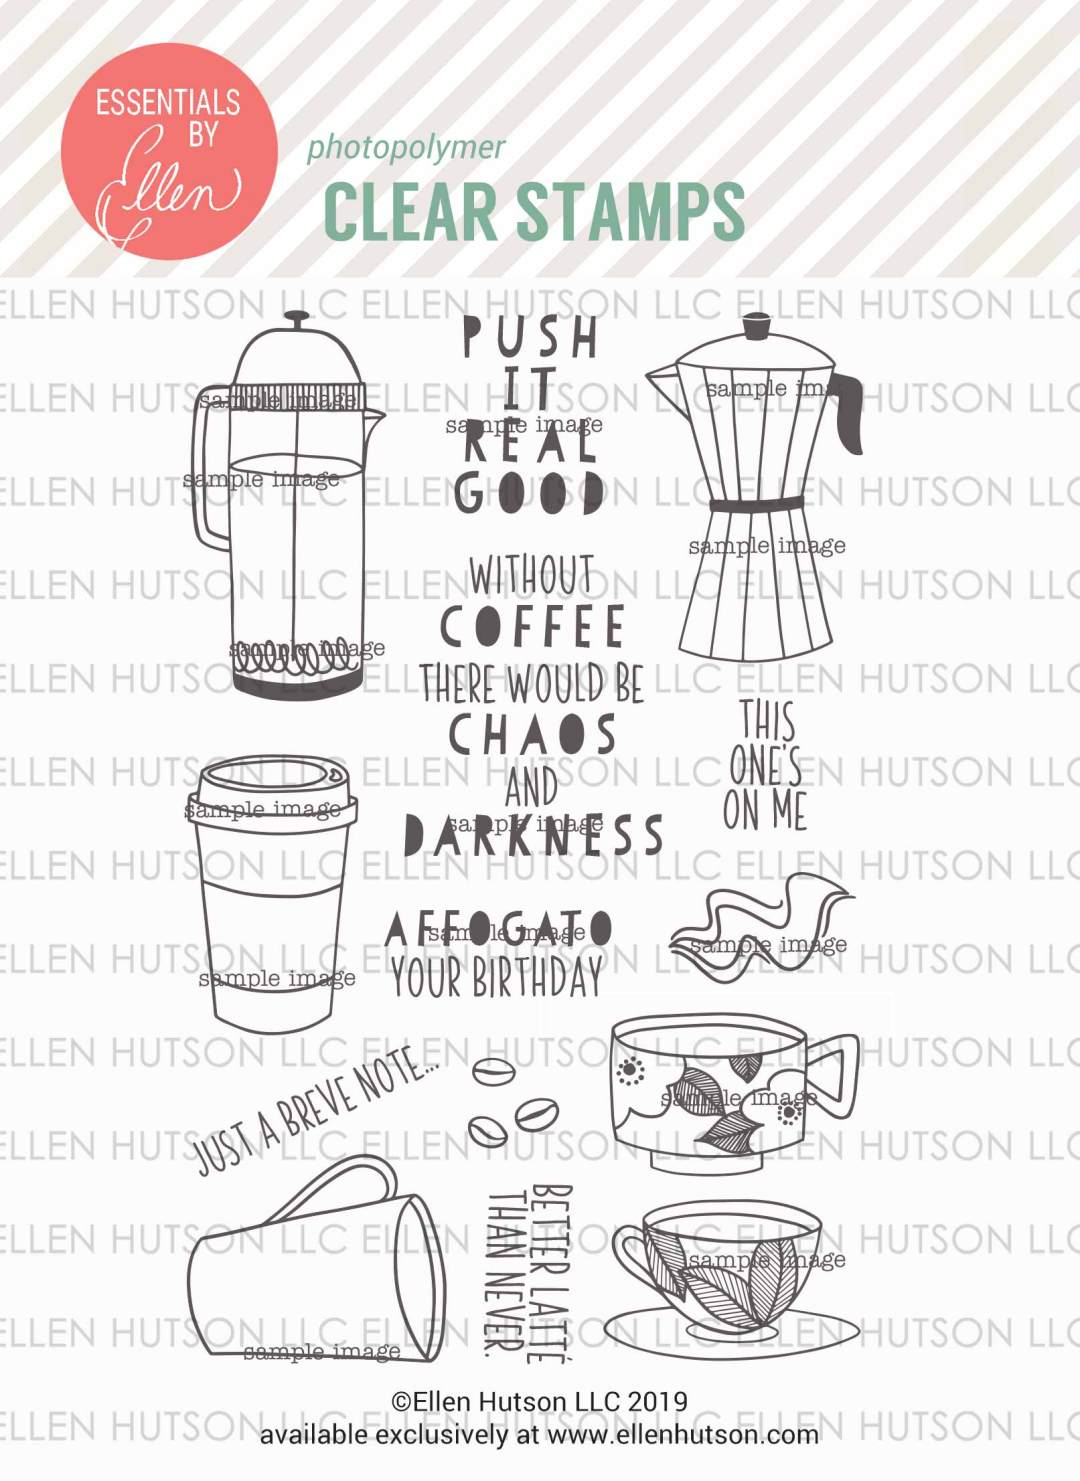 Essentials by Ellen A Breve Note stamps